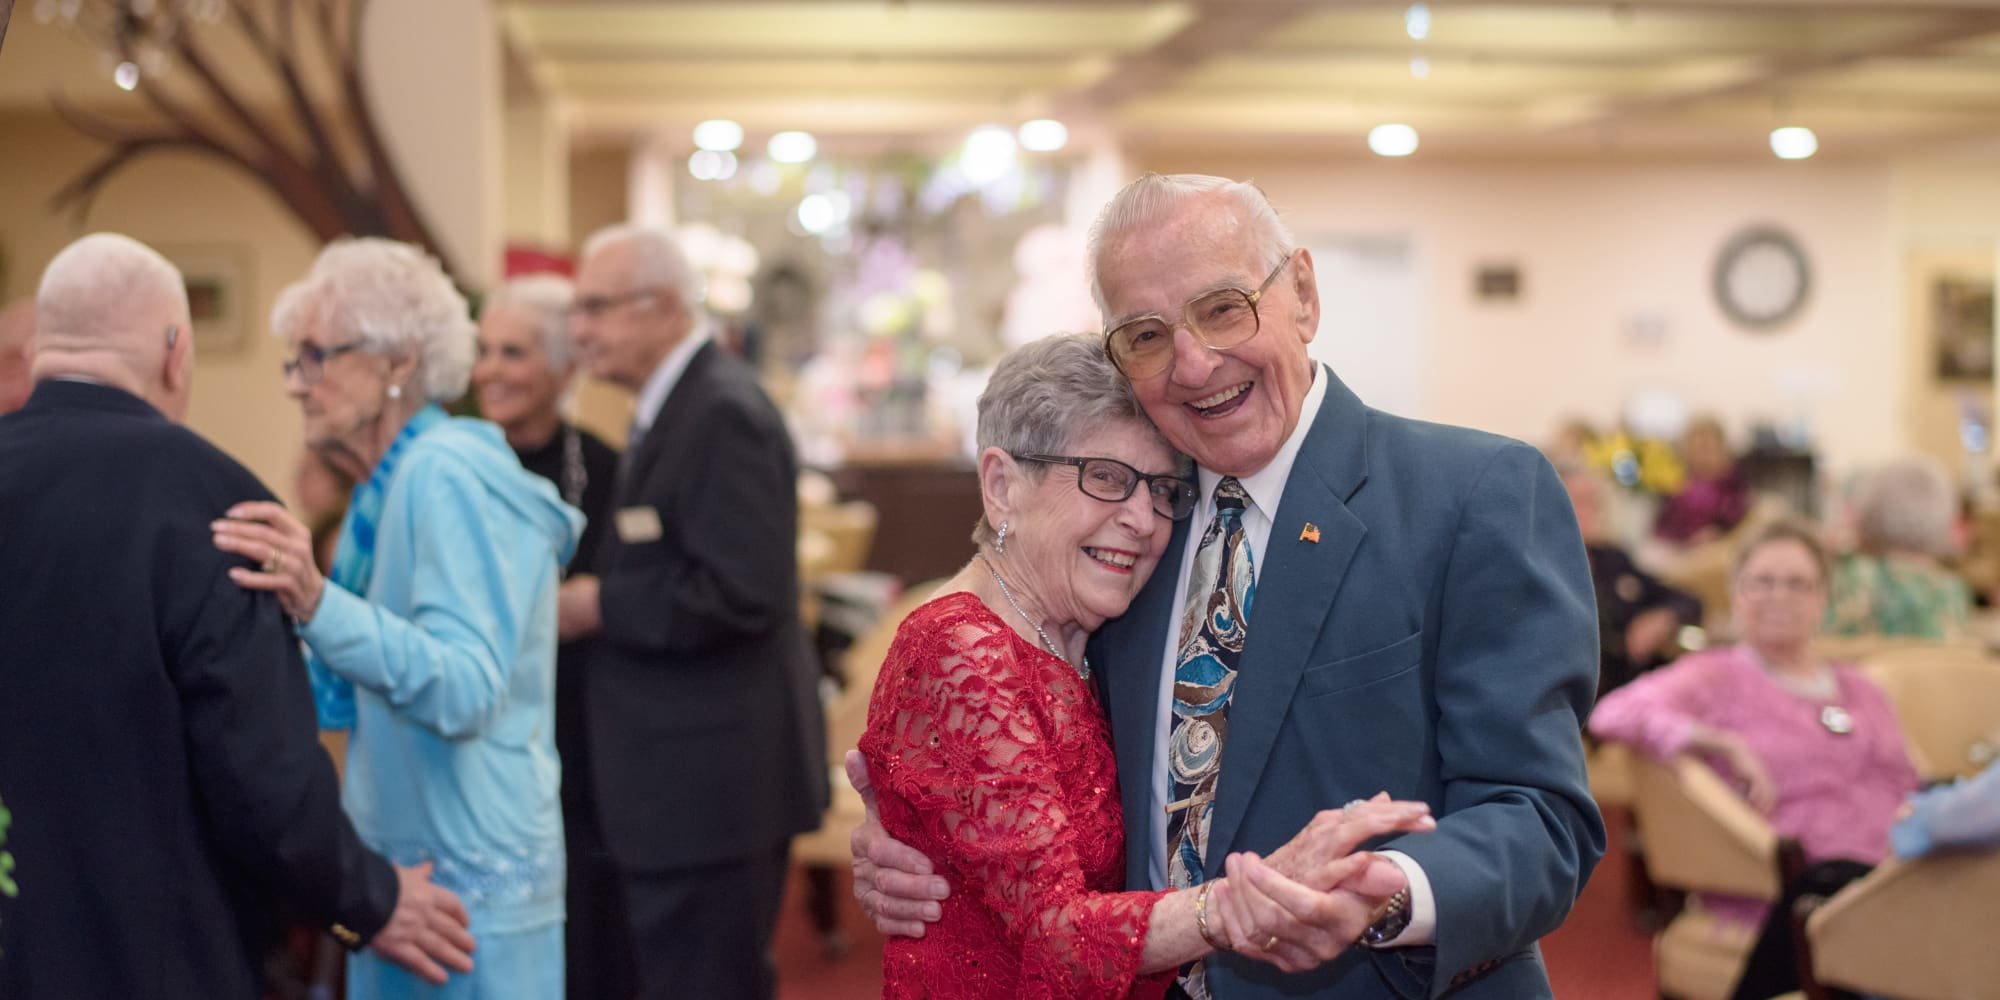 A happy couple dancing together at The Highlands Gracious Retirement Living in Westborough, Massachusetts